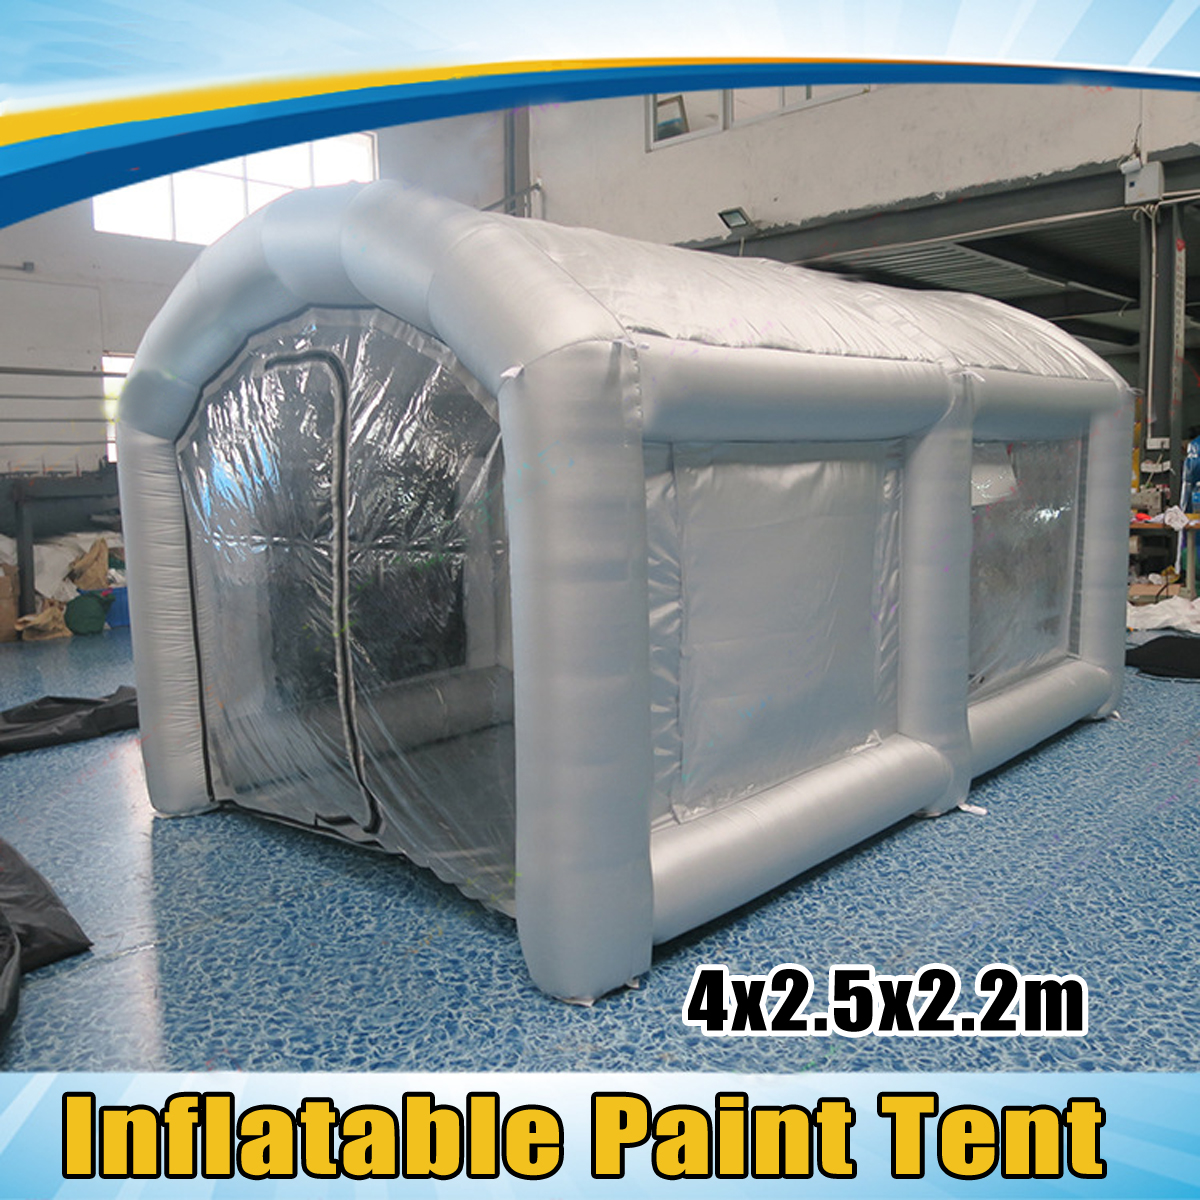 все цены на 4x2.5x2.2M Inflatable Spray Booth Tents Inflatable Paint booth Car Parking Tent Workstation with Blower Outdoor Fun